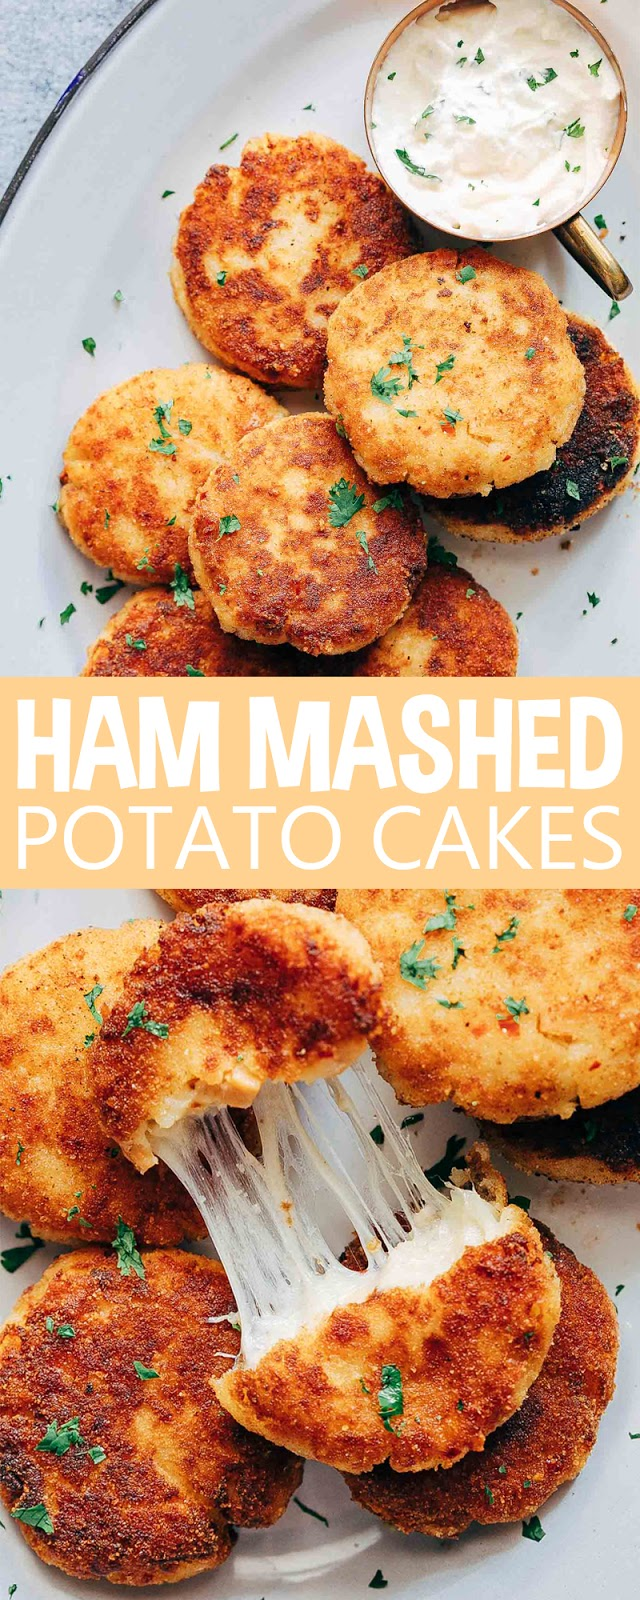 HAM MASHED POTATO CAKES